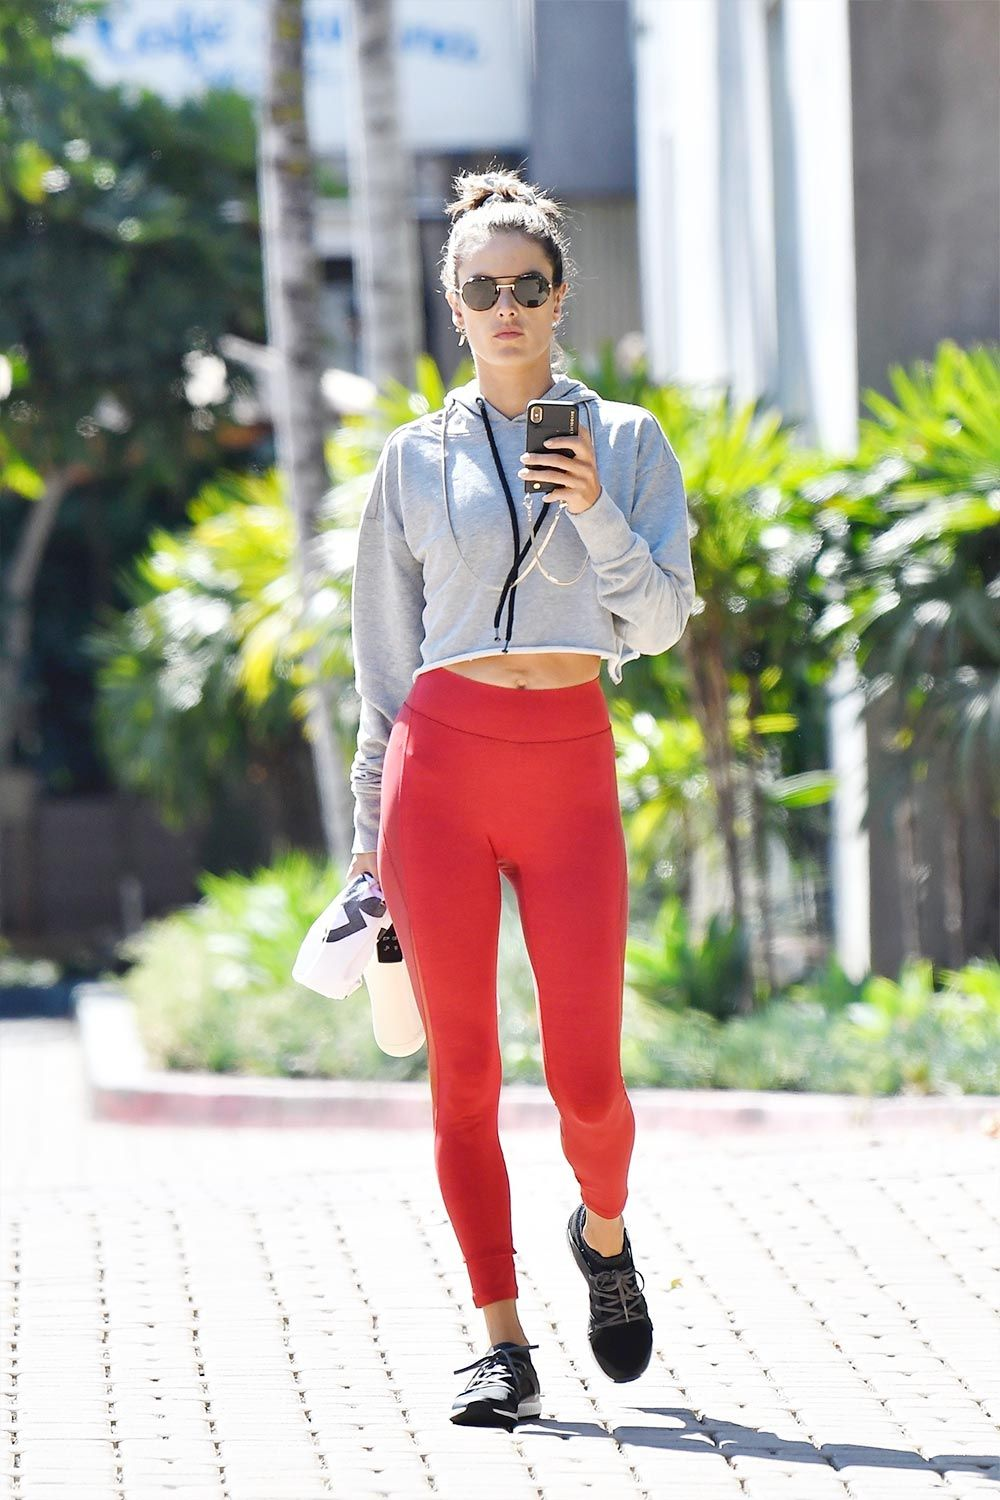 From J.Lo to J. Law, 3 Celebs and the Leggings They Won't Stop Wearing